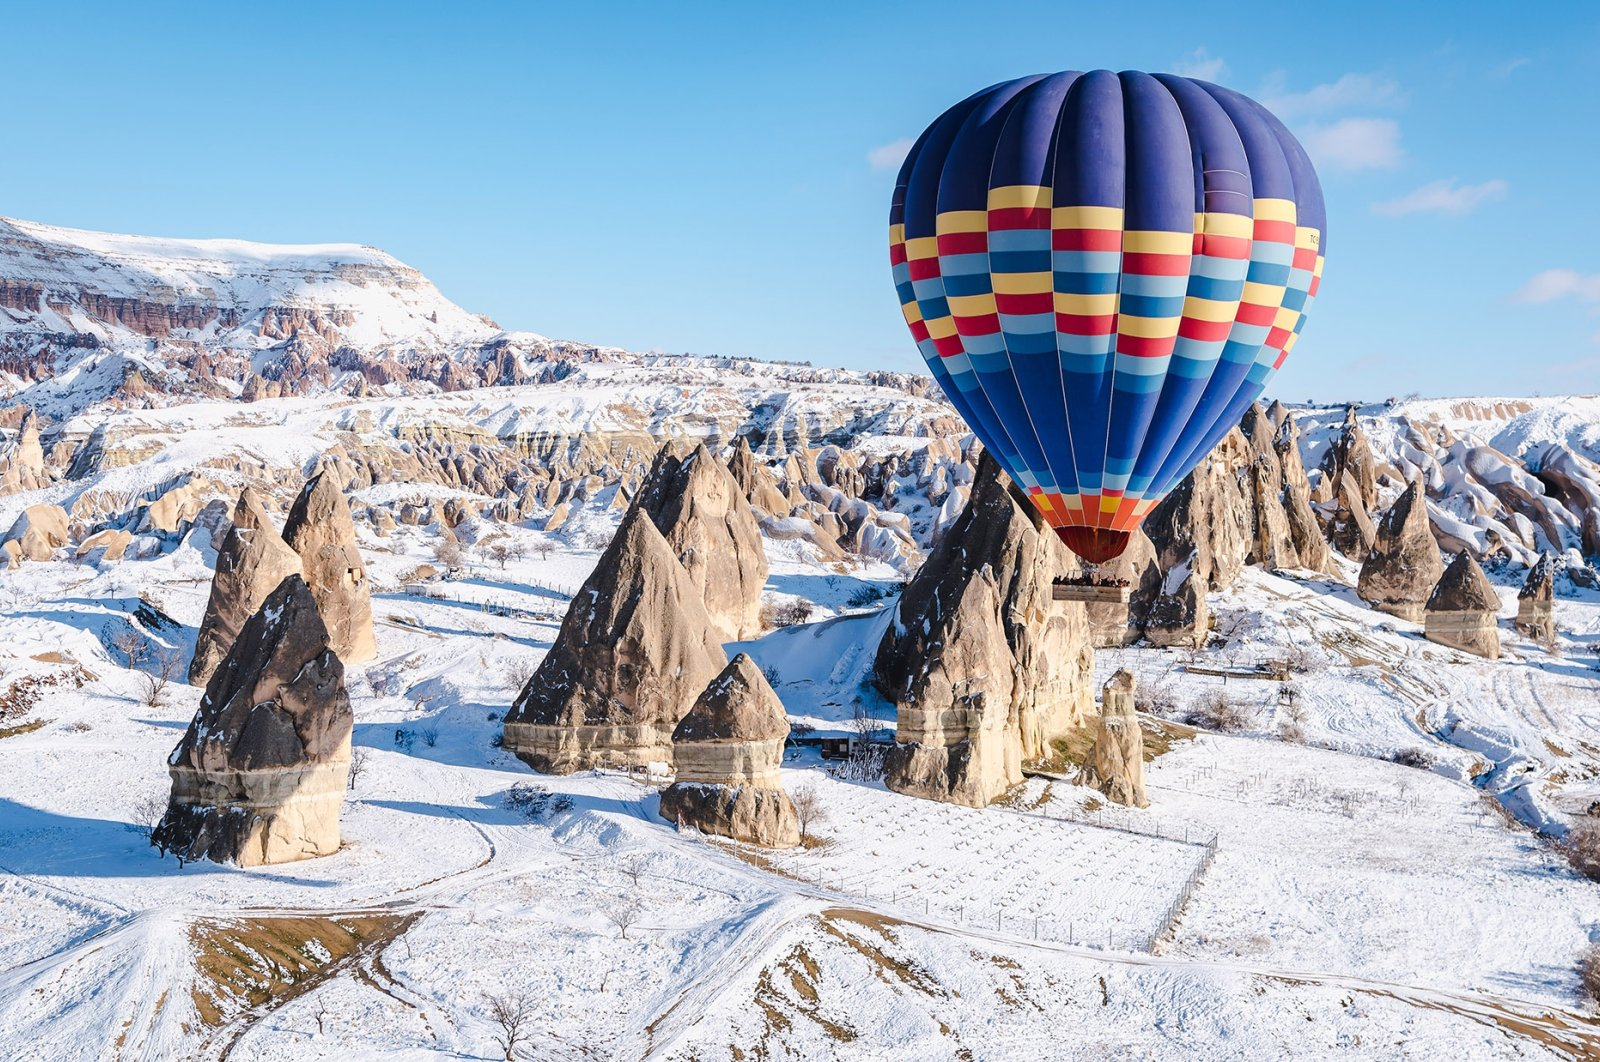 Going on a hot air balloon ride over snowy mountains in Cappadocia is a magical experience. (Shutterstock Photo)